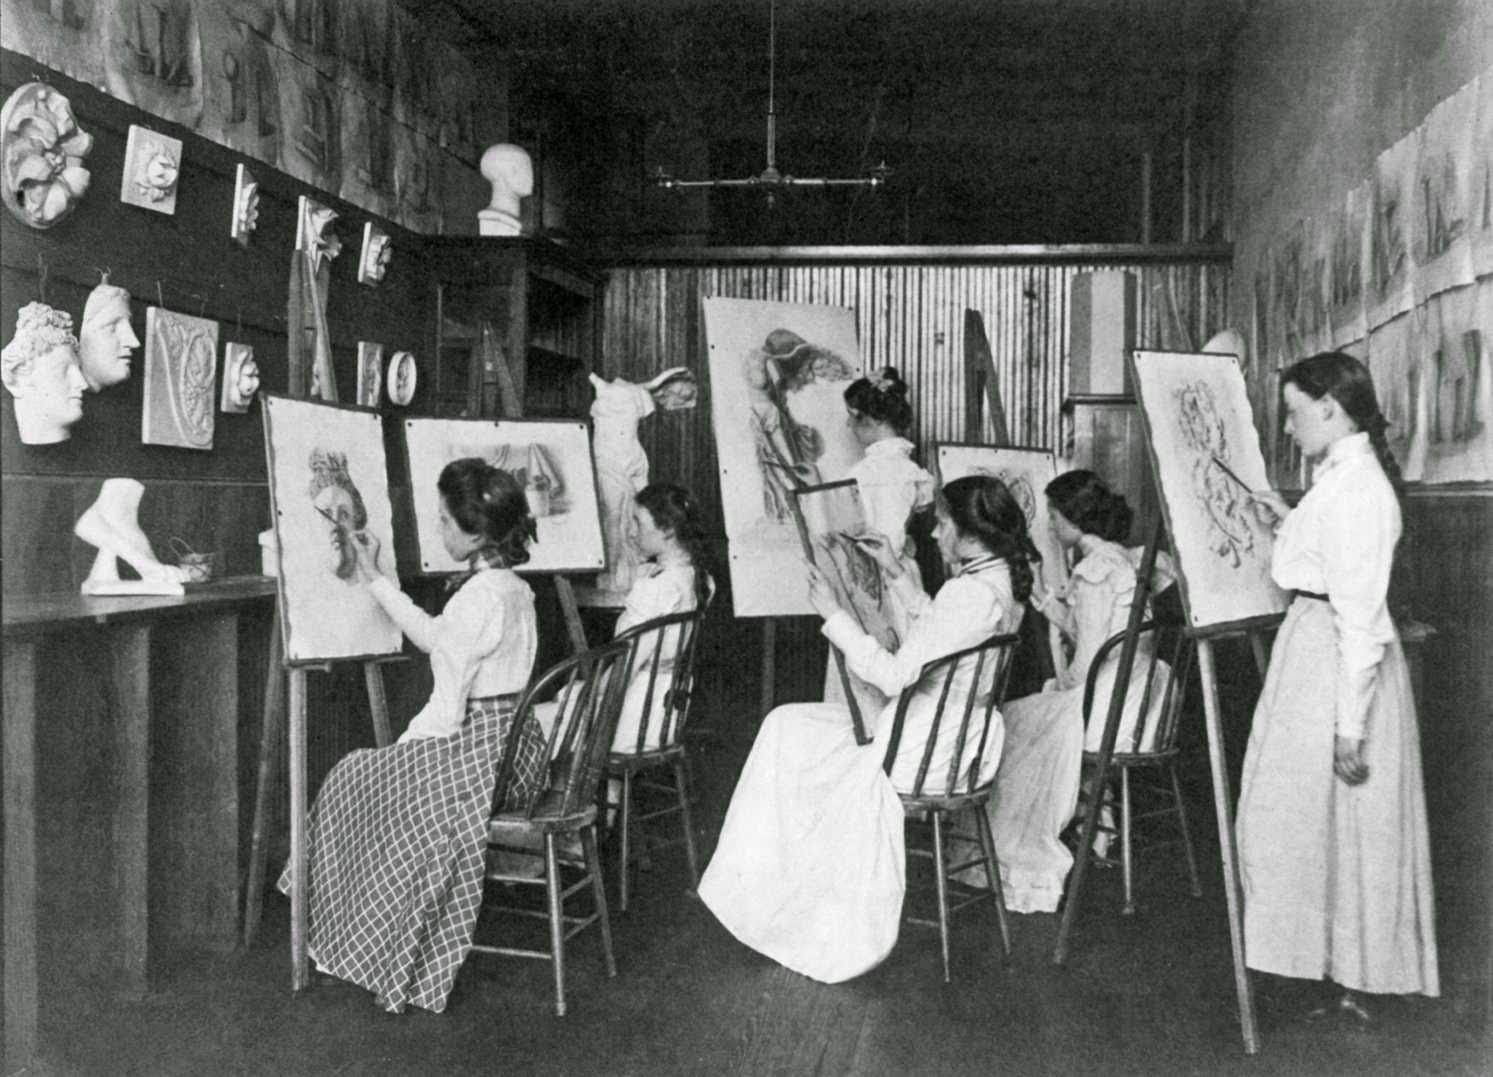 14a girls in art class, drawing at easels, Eastern High School, Washington, DC, 1899